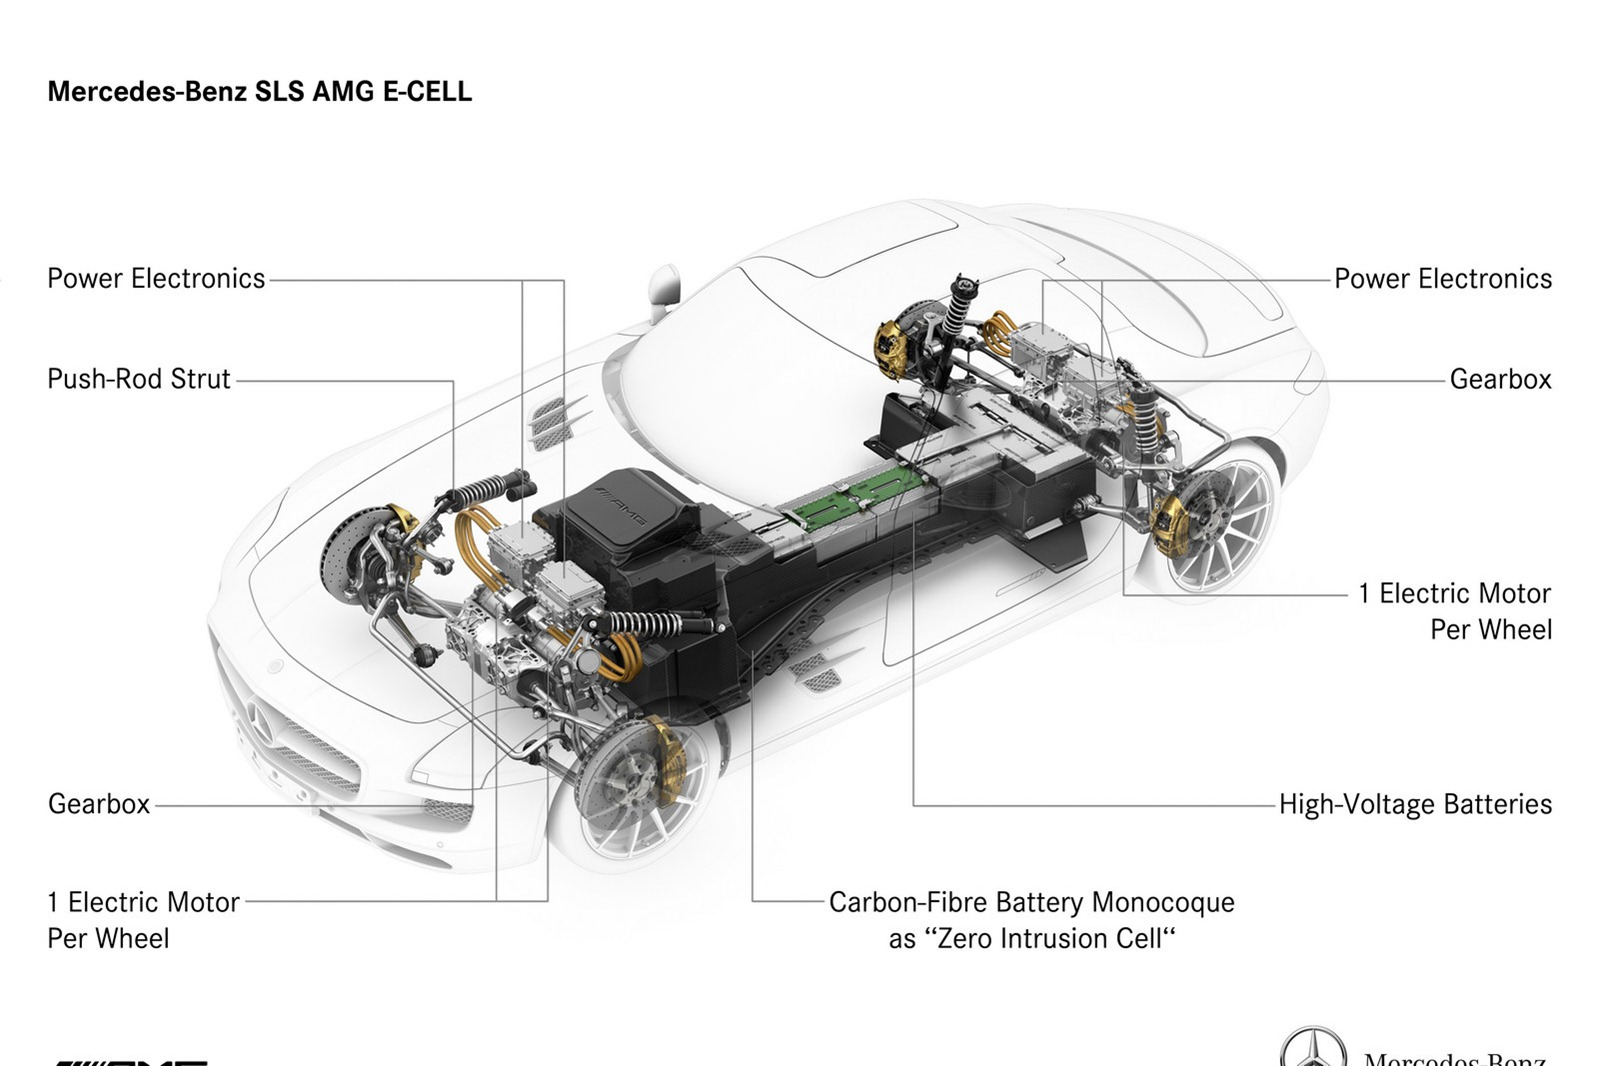 mercedes reveal sls e cell s awd torque vectoring powertrain electric vehicle news [ 1600 x 1066 Pixel ]